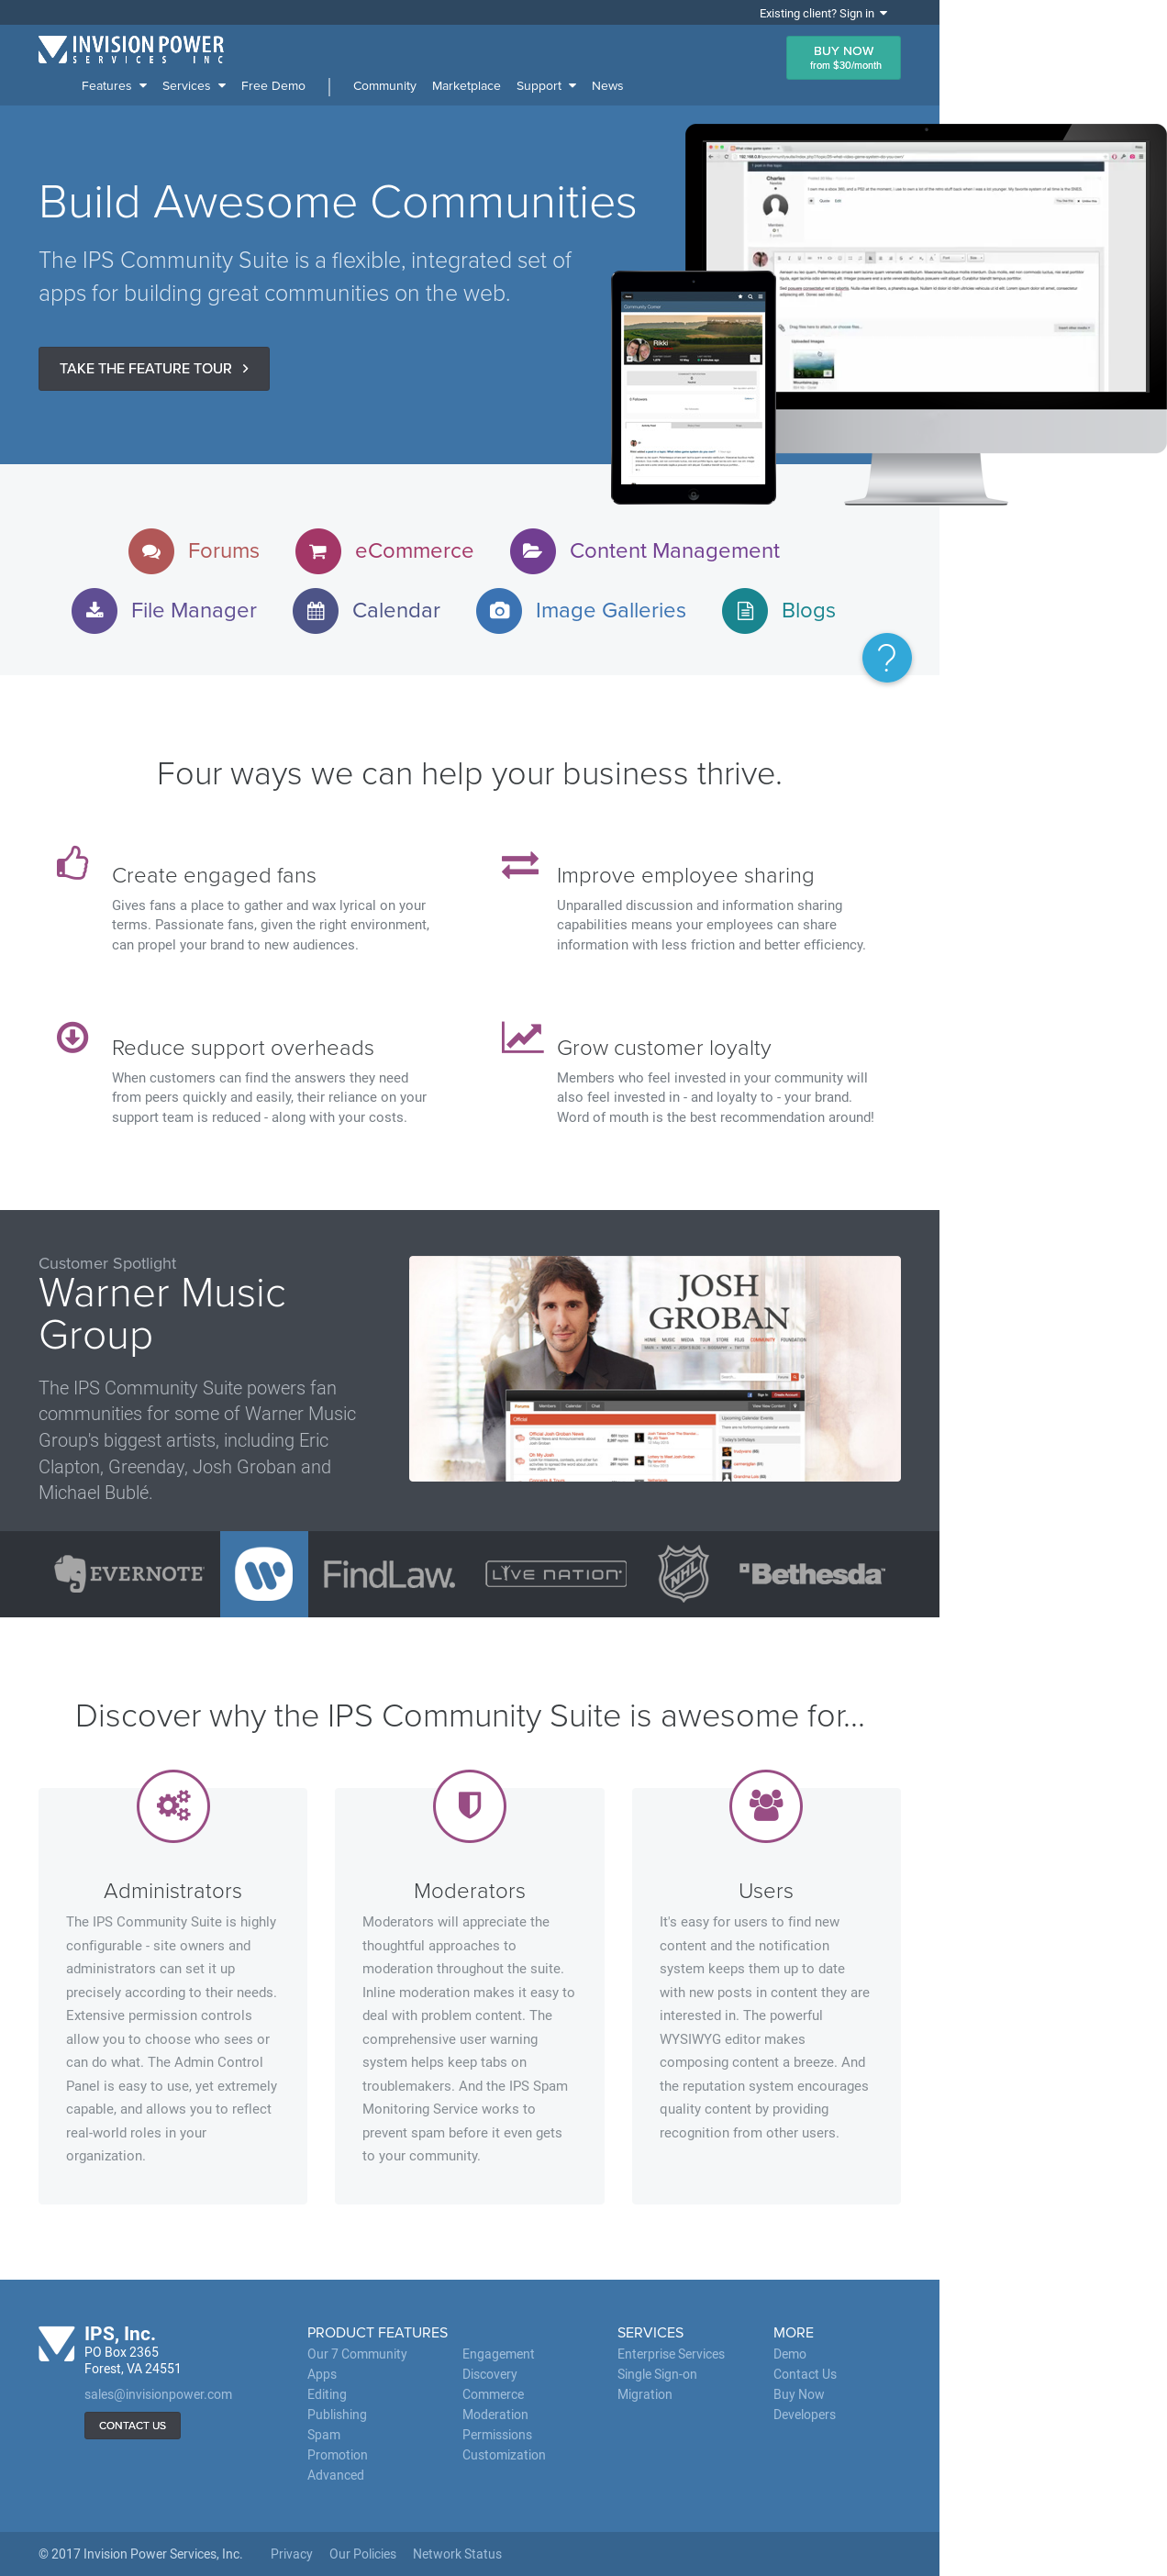 Invisionpower Competitors, Revenue and Employees - Owler